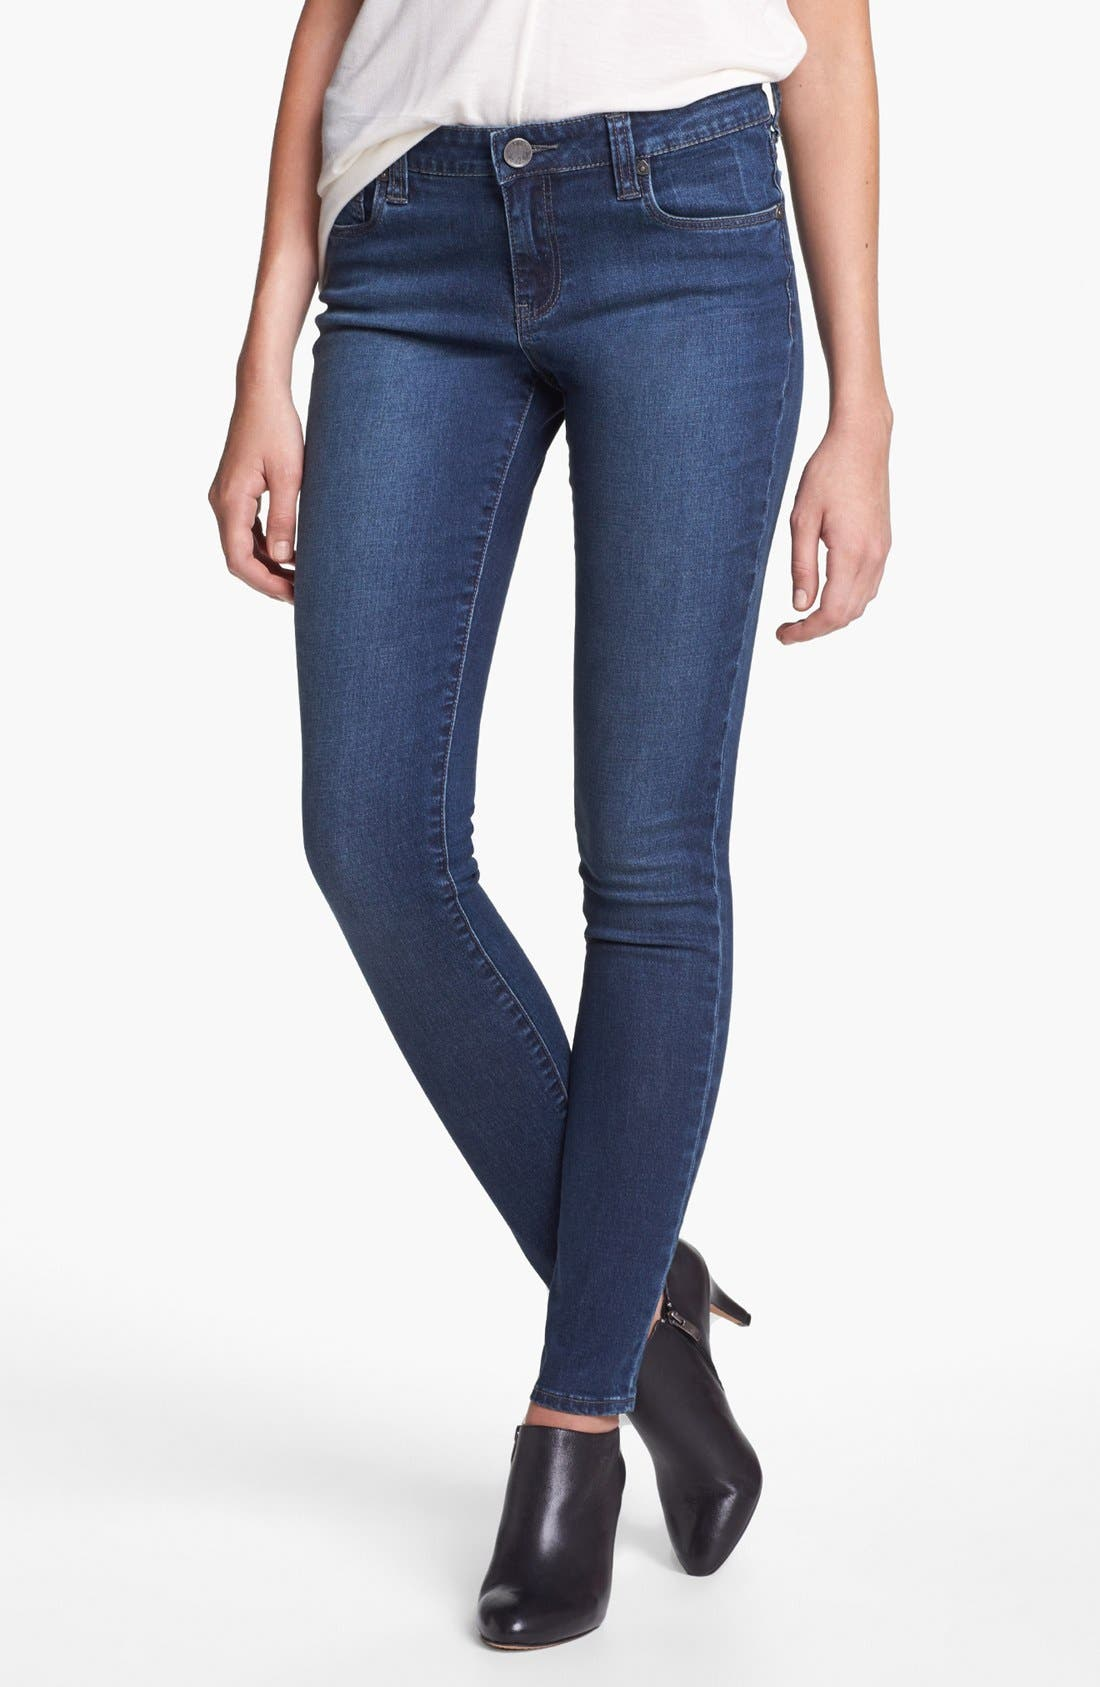 Main Image - KUT from the Kloth 'Elle' Skinny Jeans (Healthy)